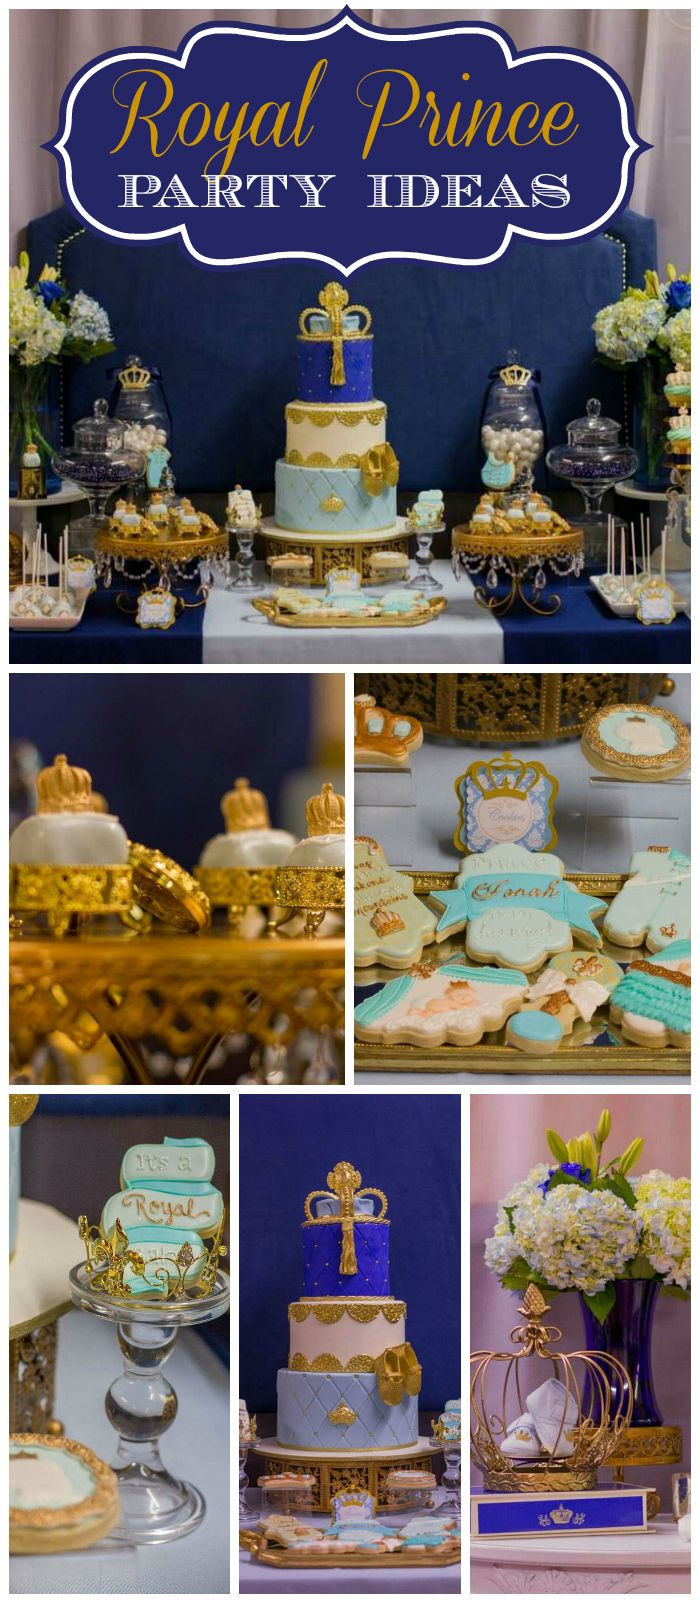 A Royal Prince Baby Shower In Blue And Gold With Amazing Decorations And  Treats! See